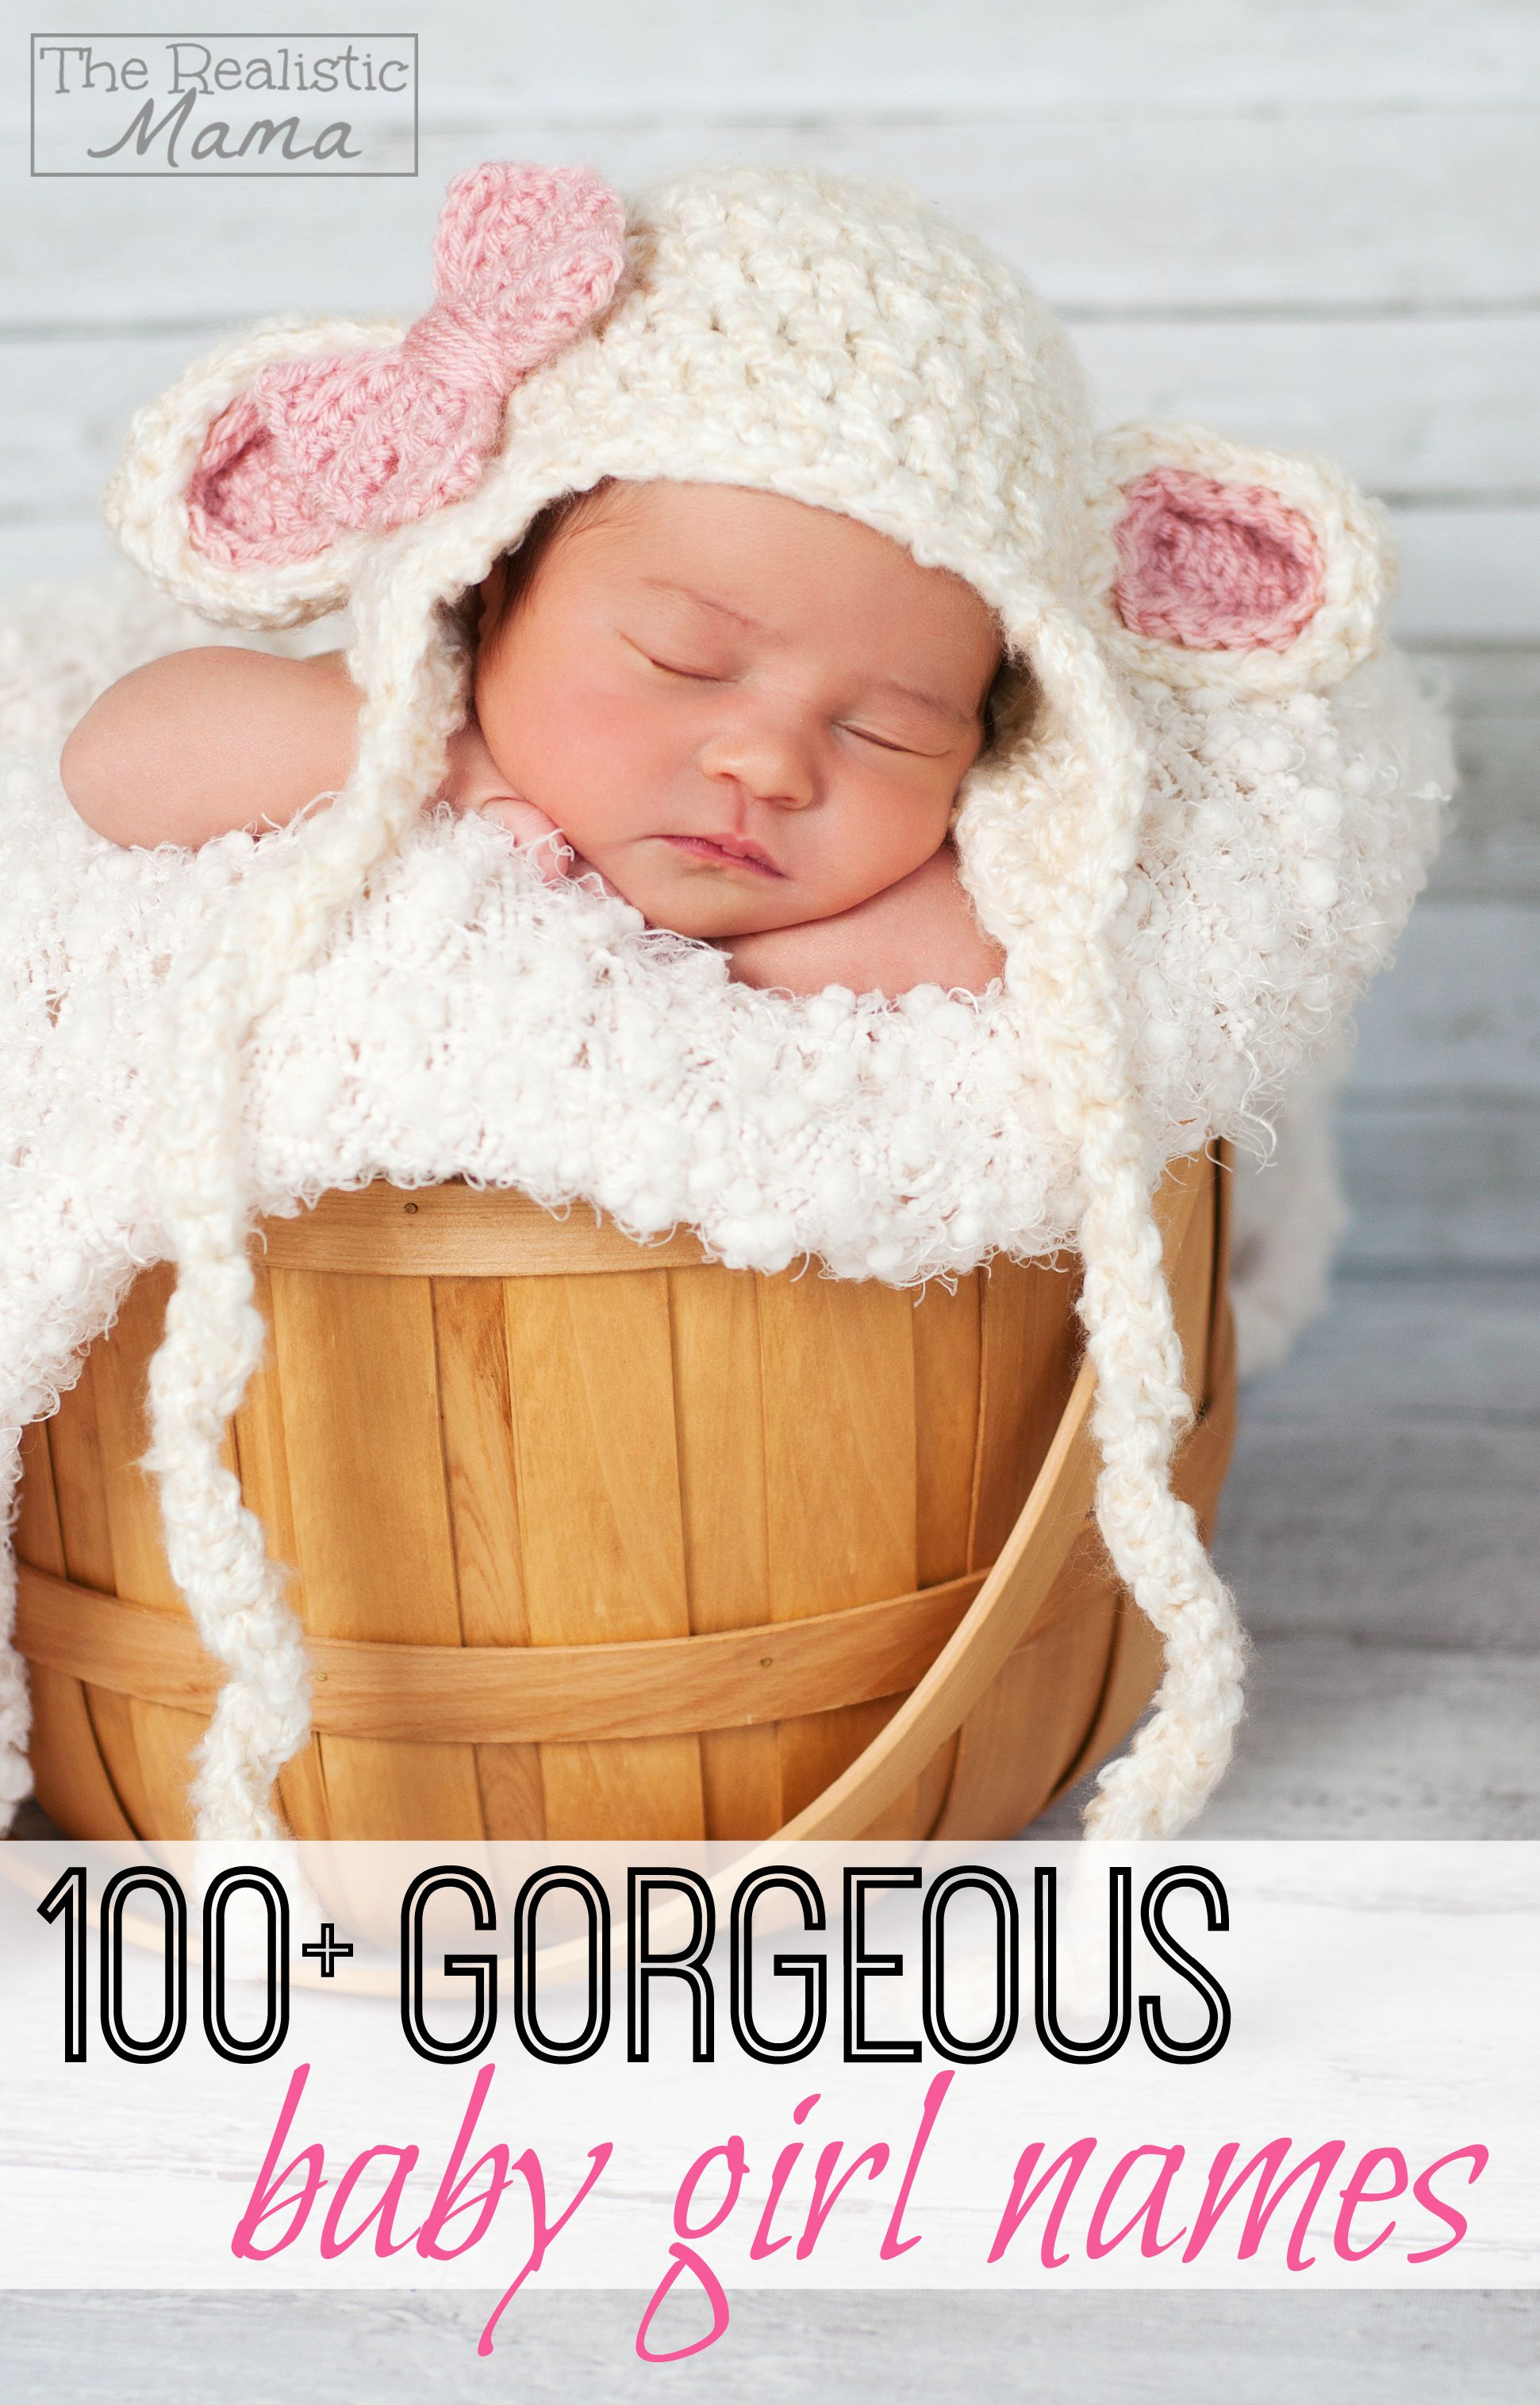 100 Gorgeous Baby Girl Names